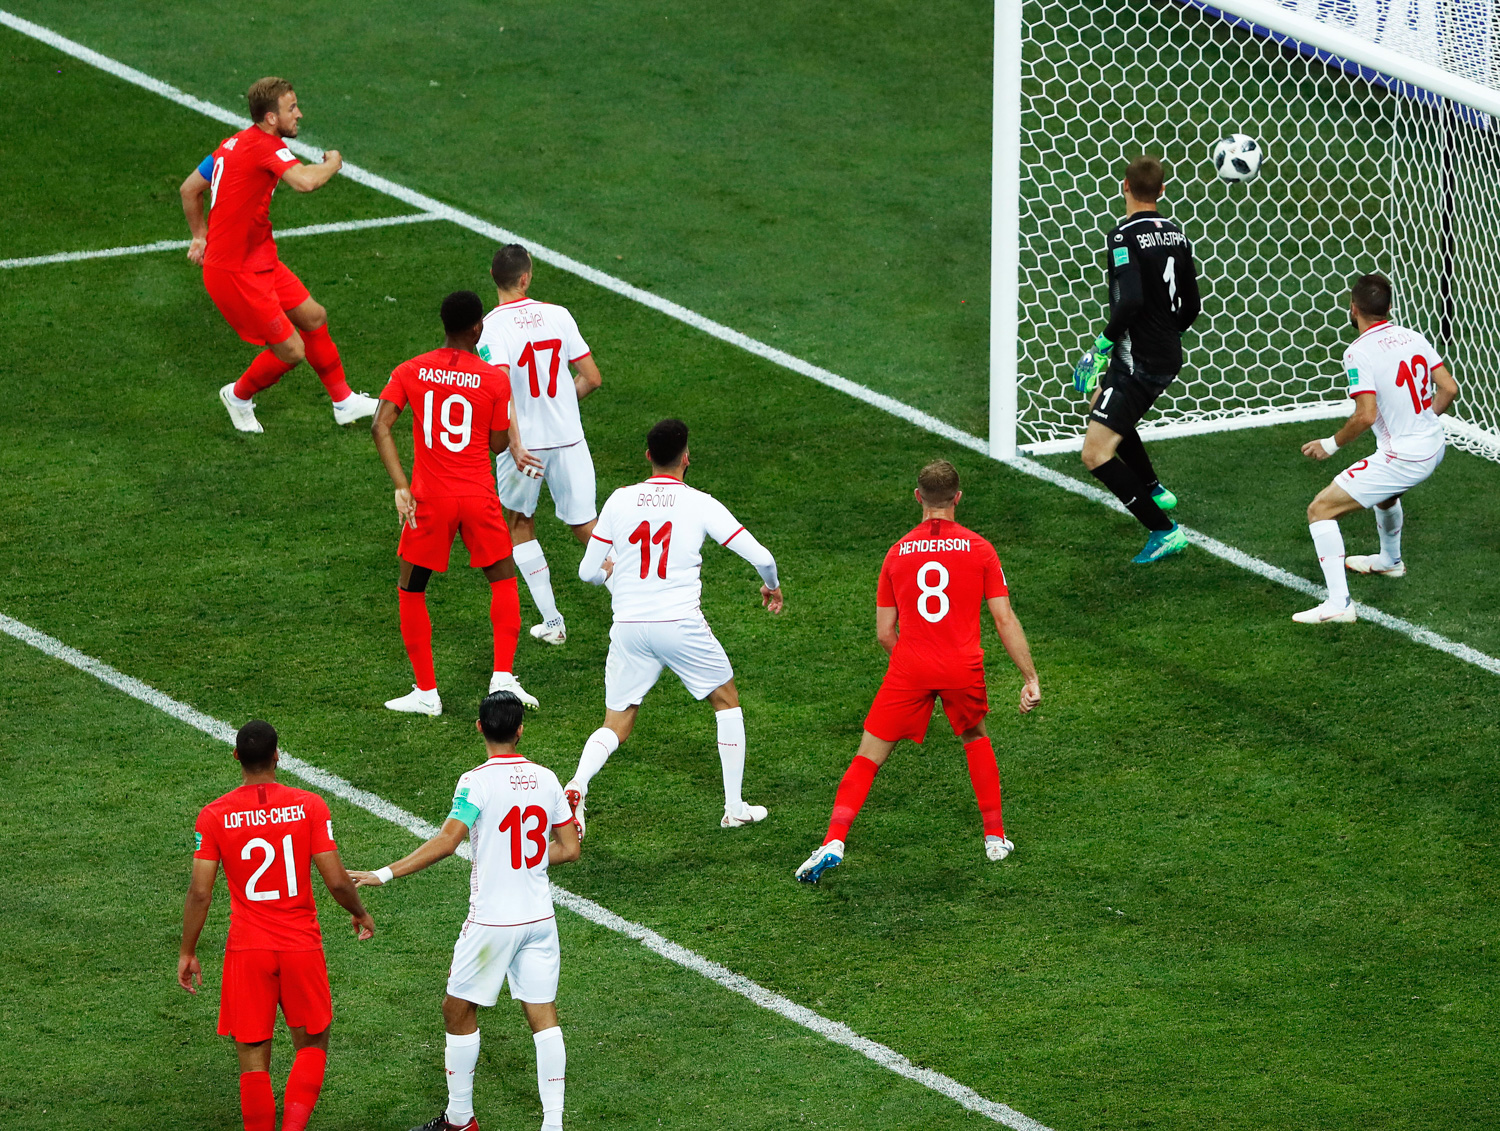 <div class='meta'><div class='origin-logo' data-origin='none'></div><span class='caption-text' data-credit='Rebecca Blackwell/AP Photo'>England's Harry Kane, left, scores his side's winning goal during the group G match between Tunisia and England</span></div>